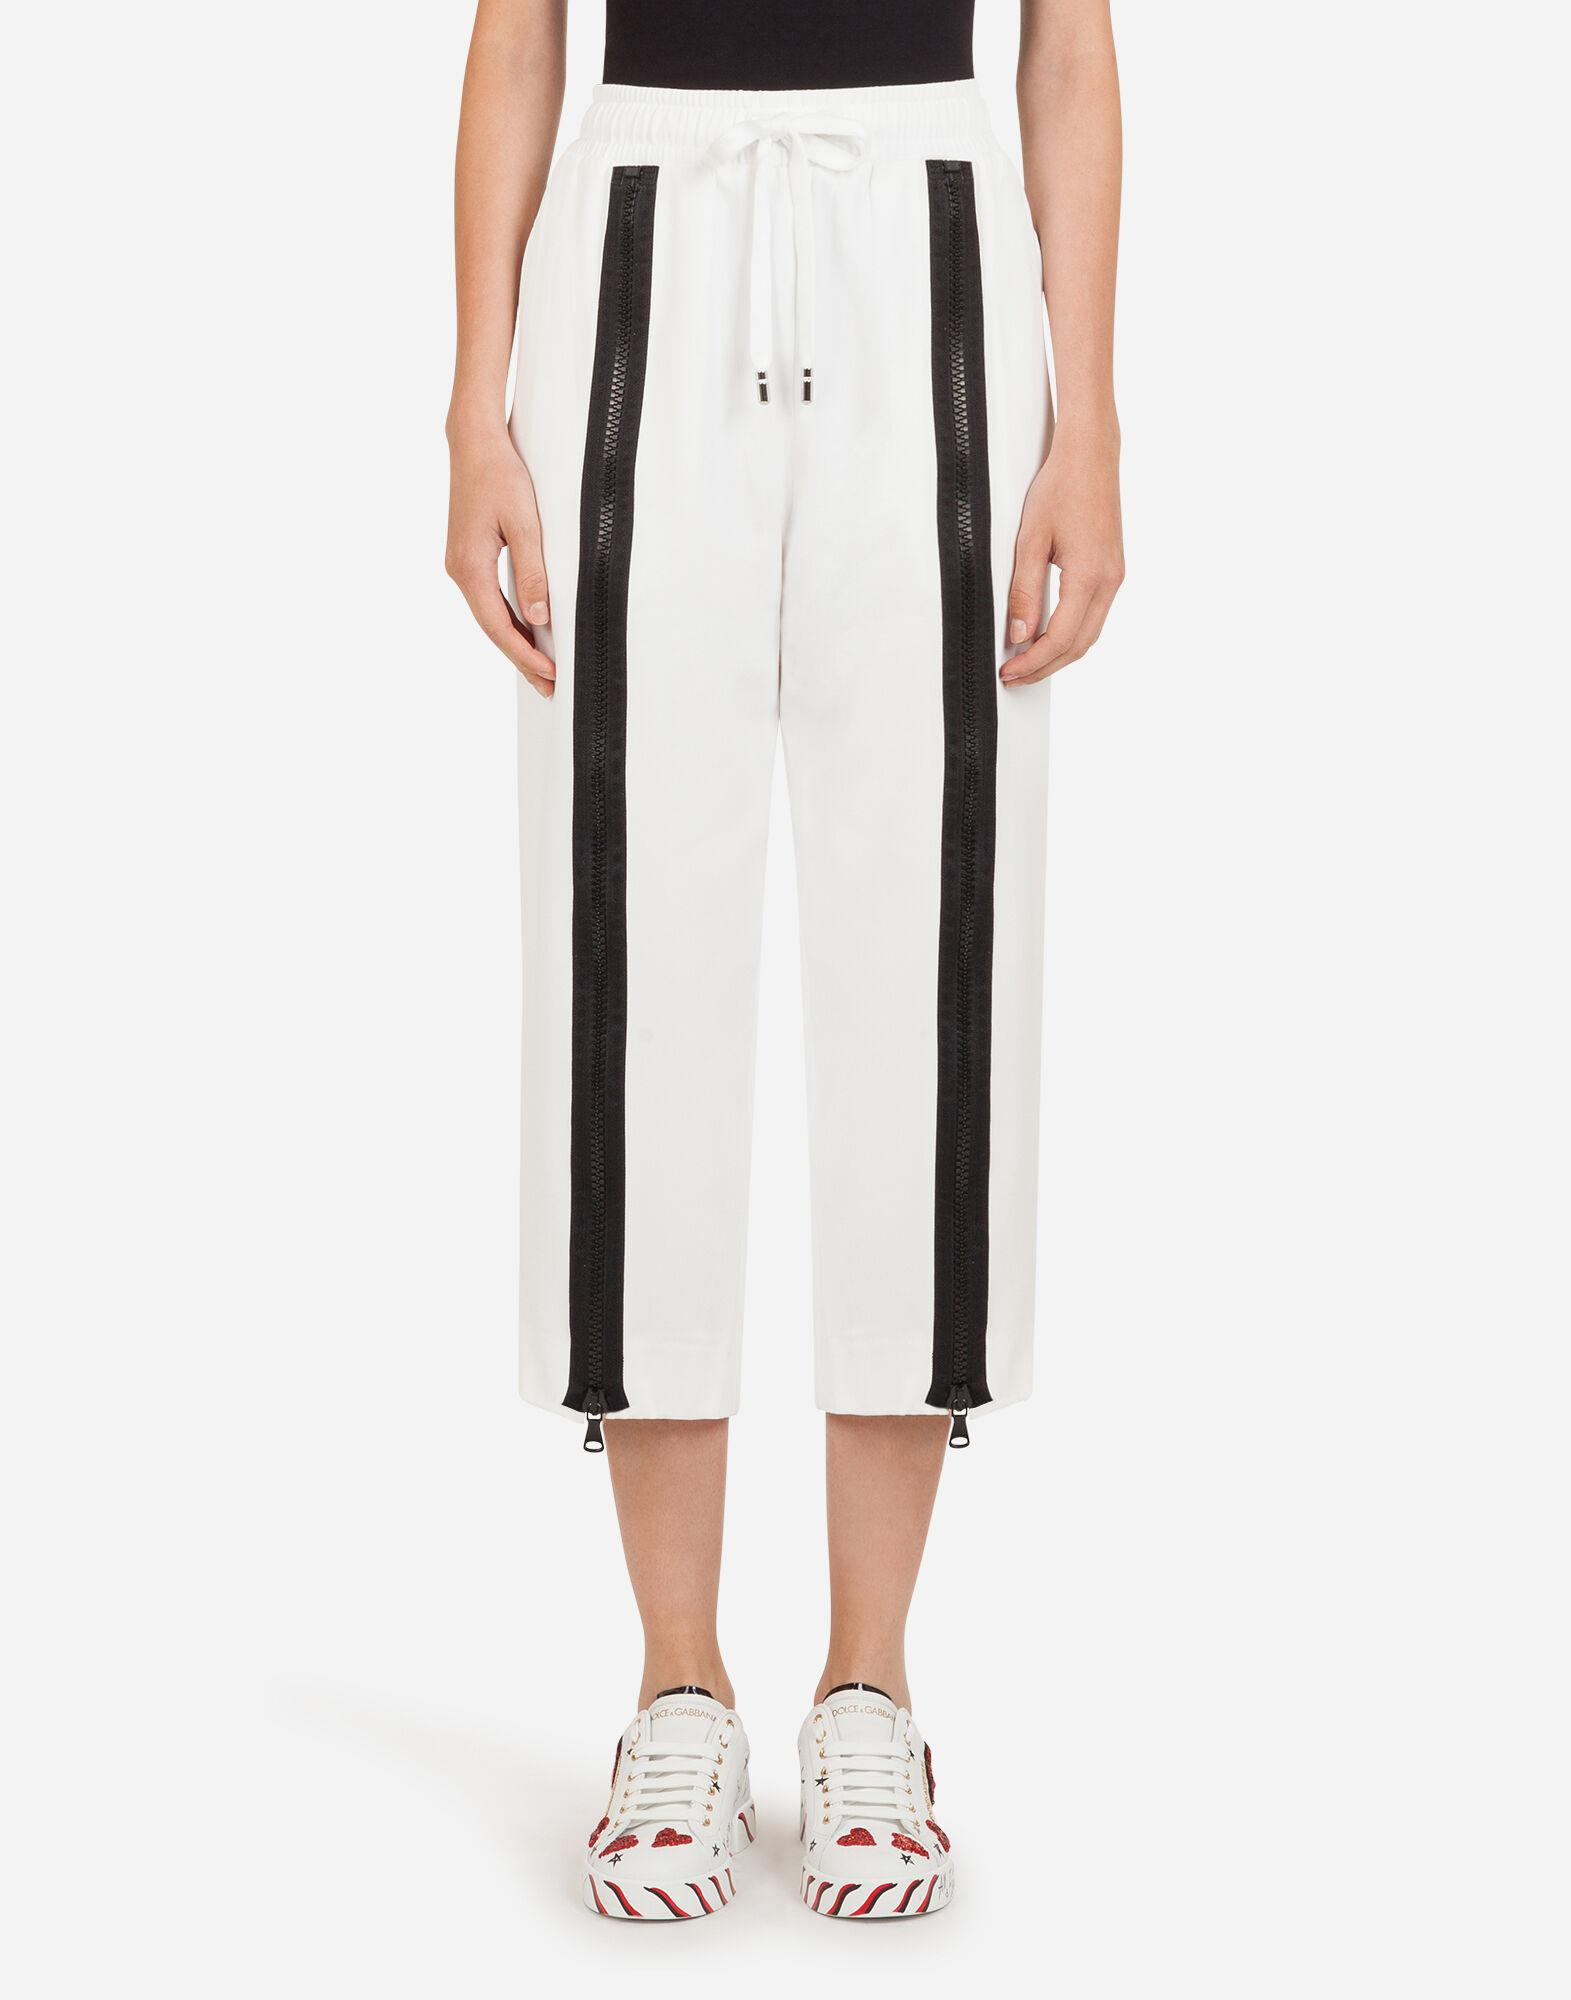 Cady pants with D&G bands and zipper